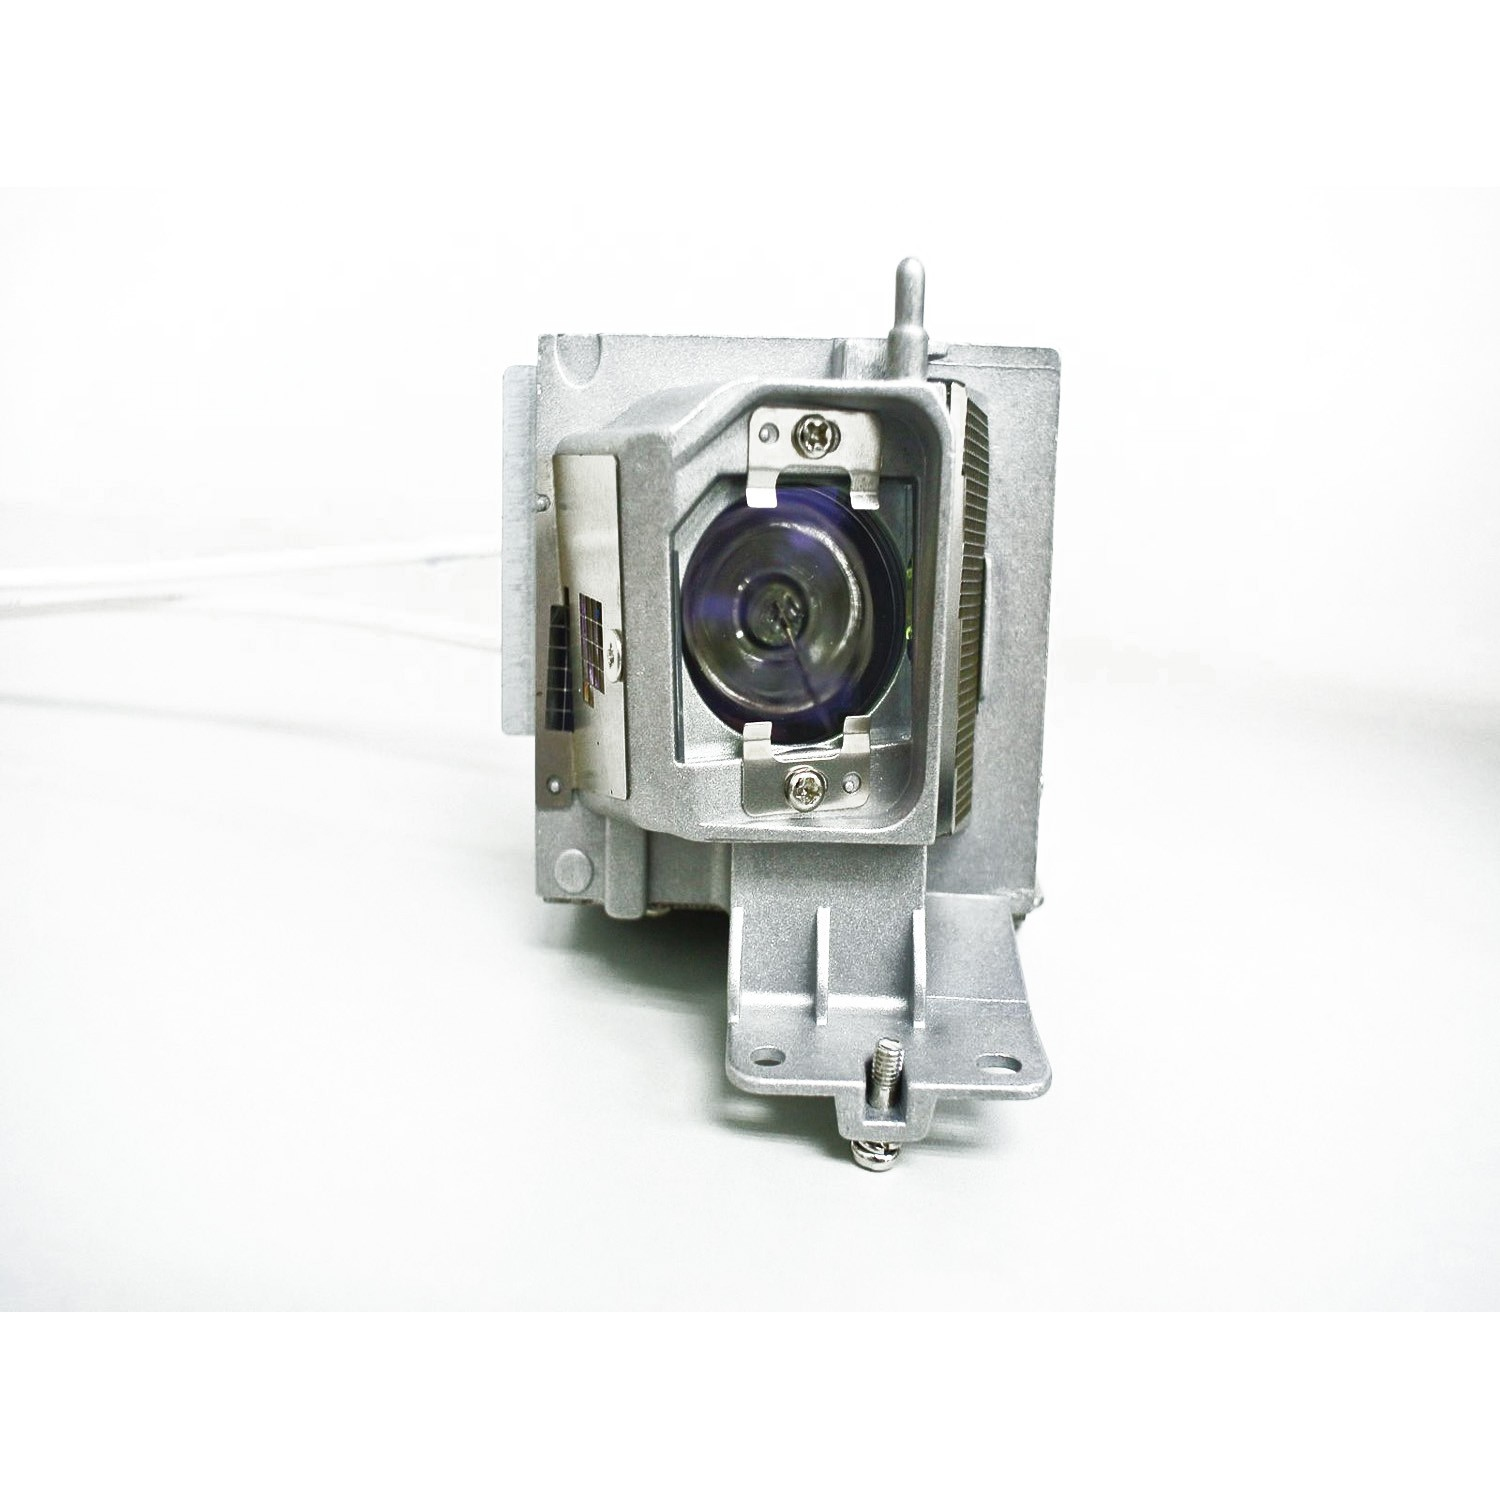 V7 NP35LP-V7-1E REPLACEMENT LAMP FOR NEC NP35LP